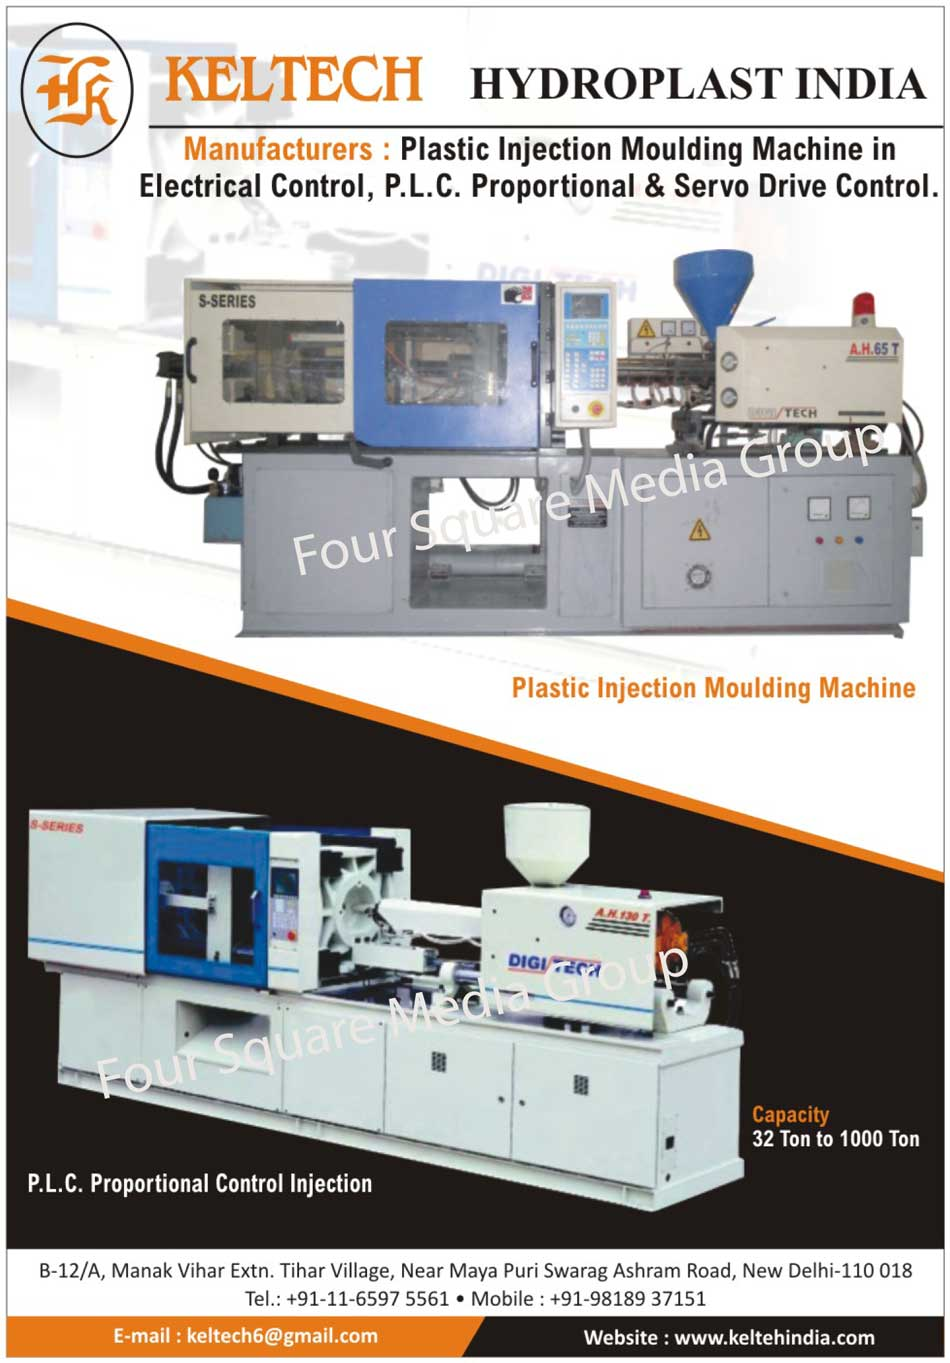 Plastic Injection Moulding Machine, Plastic Injection Molding Machine, PLC Proportional Control Injection Moulding Machine, PLC Proportional Control Injection Molding Machine